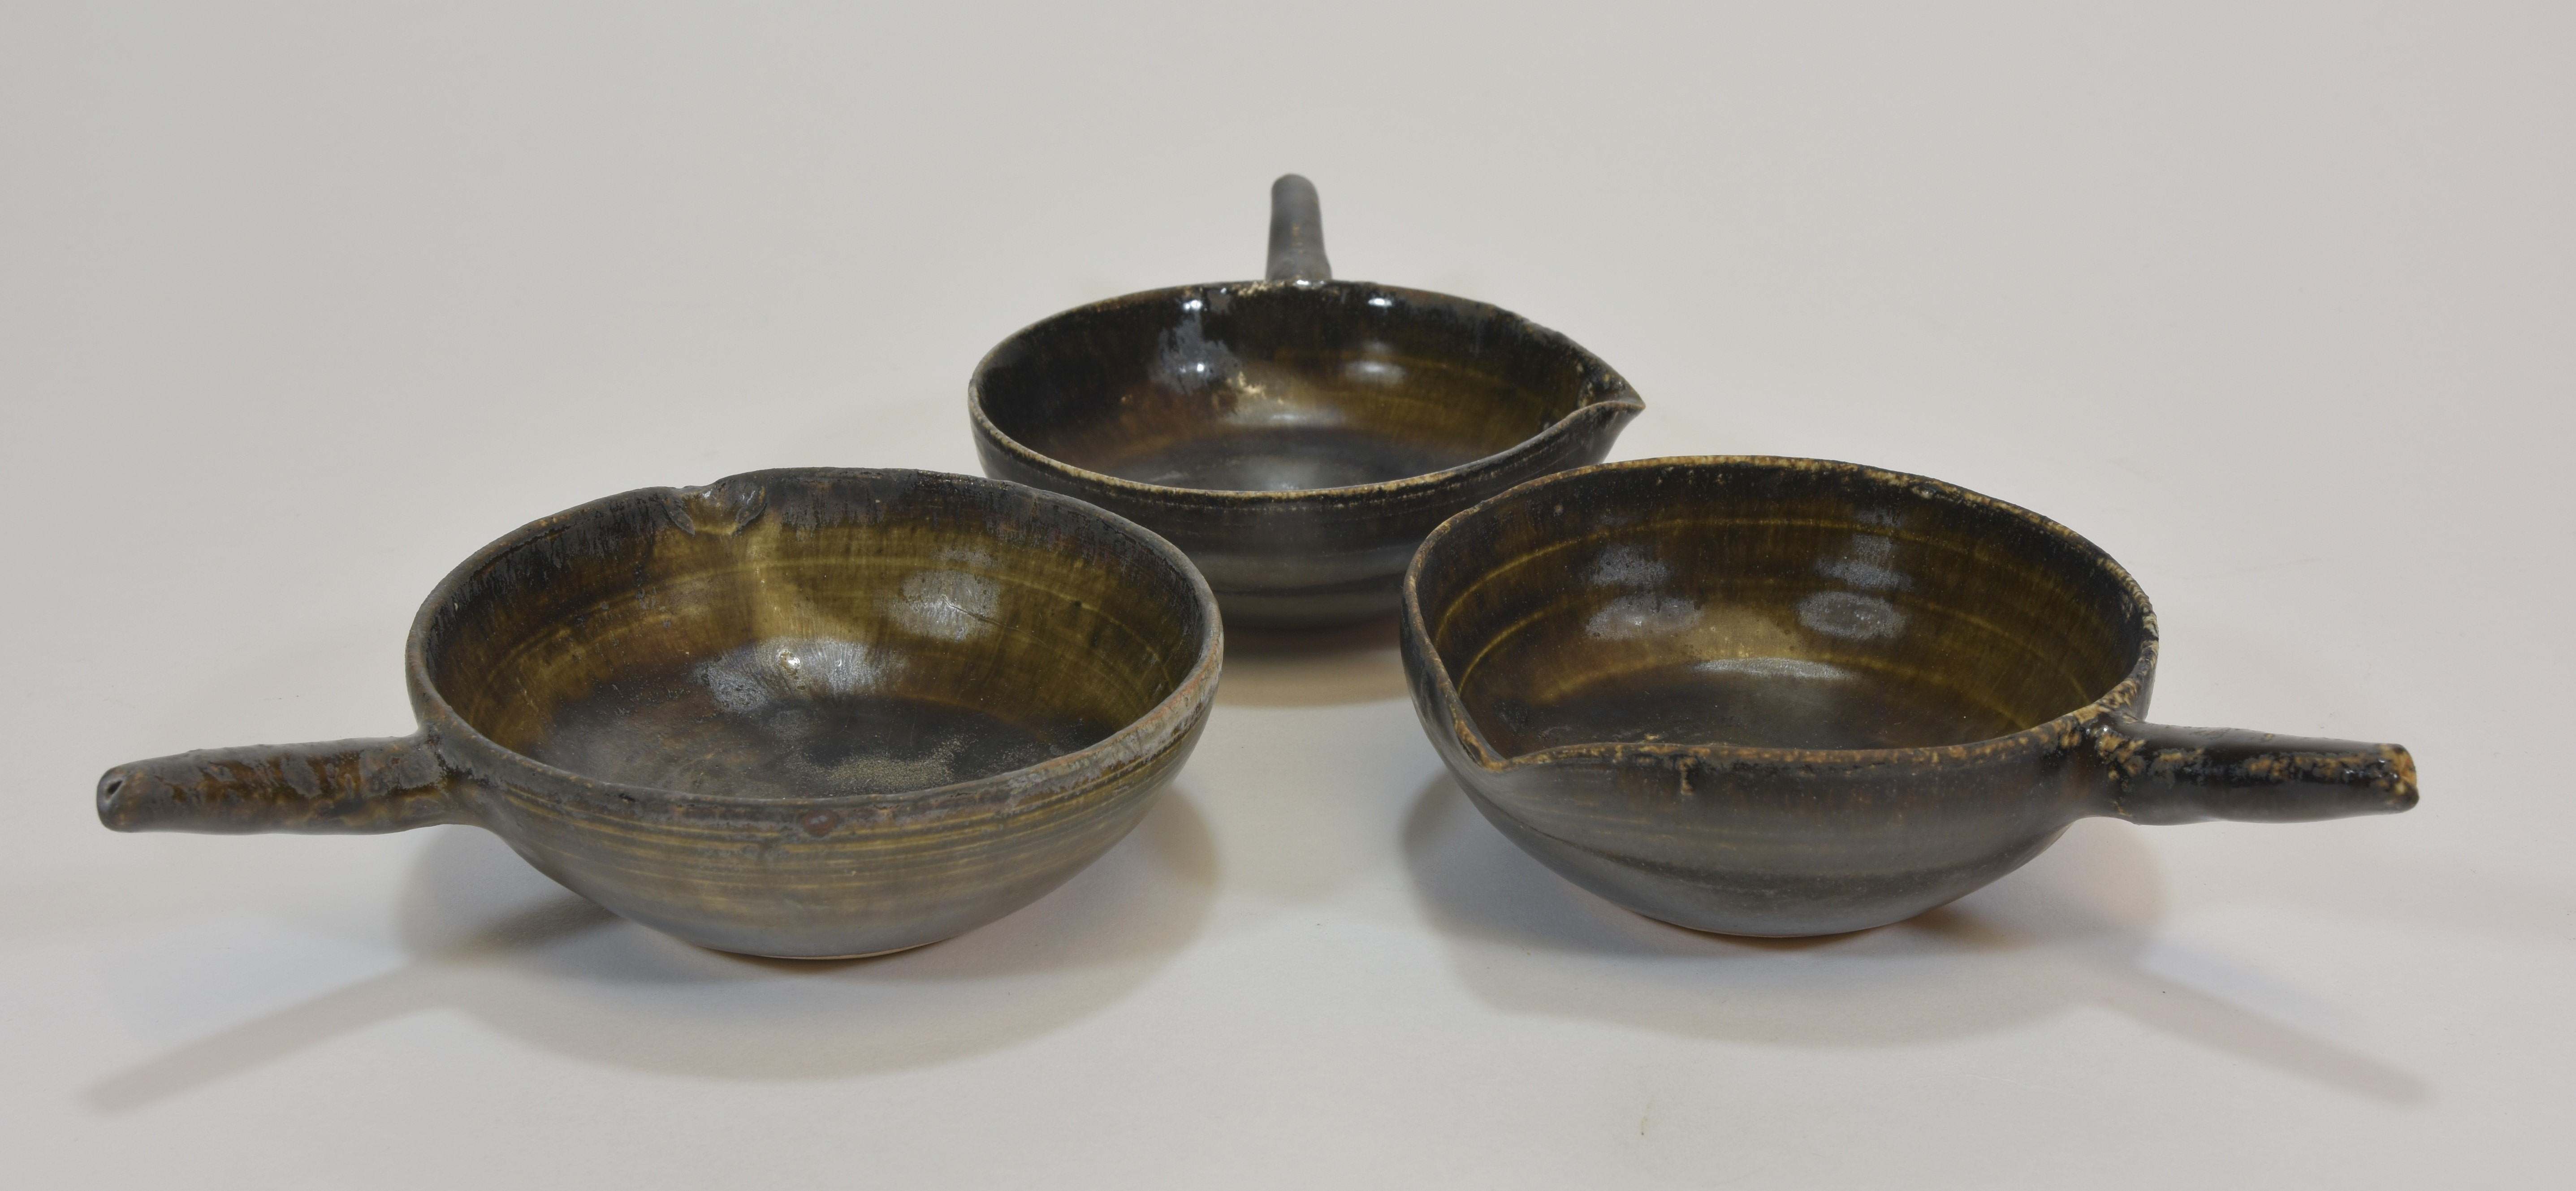 Lot 21 - Three 12th century Southern Song dynasty brown glazed bowls with handles 10cm diameter (3)宋朝時期 灰釉小碗